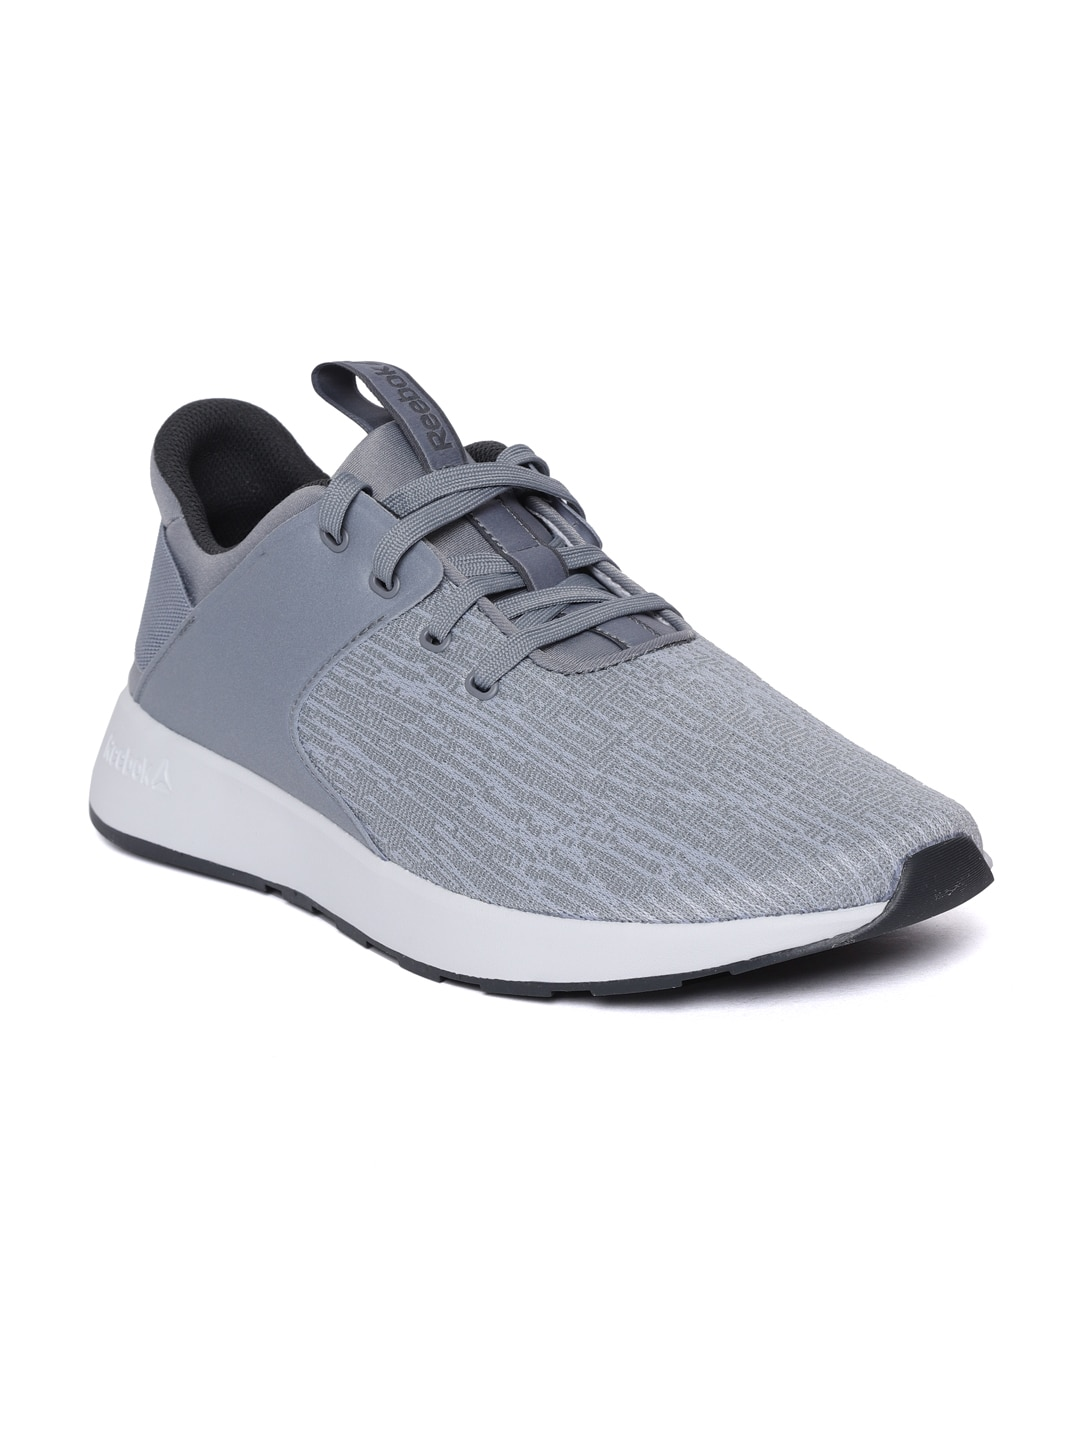 625a2ff26f41 Walking Shoes Online In India. Reebok Men Running Shoes